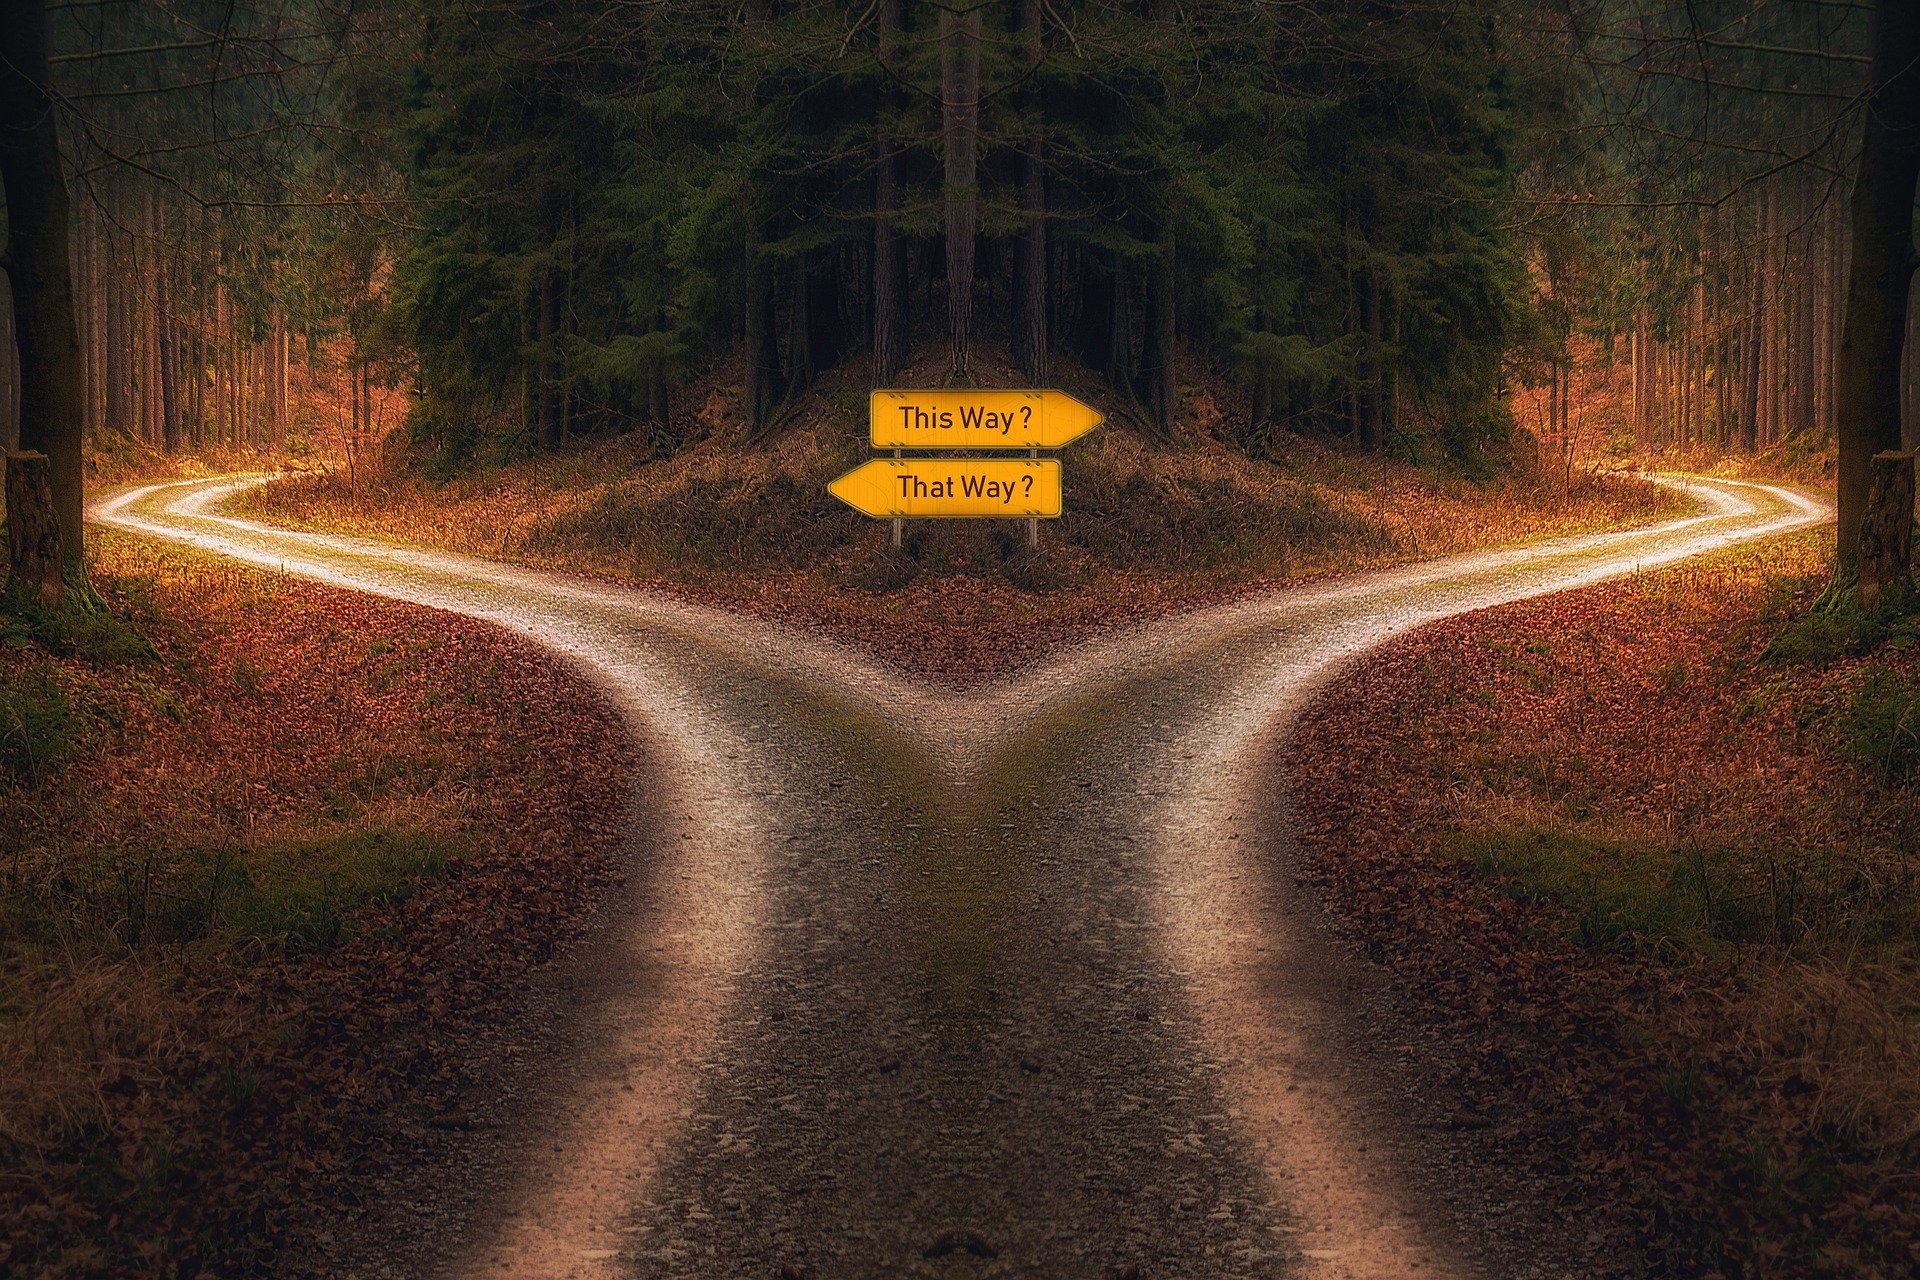 Image of a road with two paths